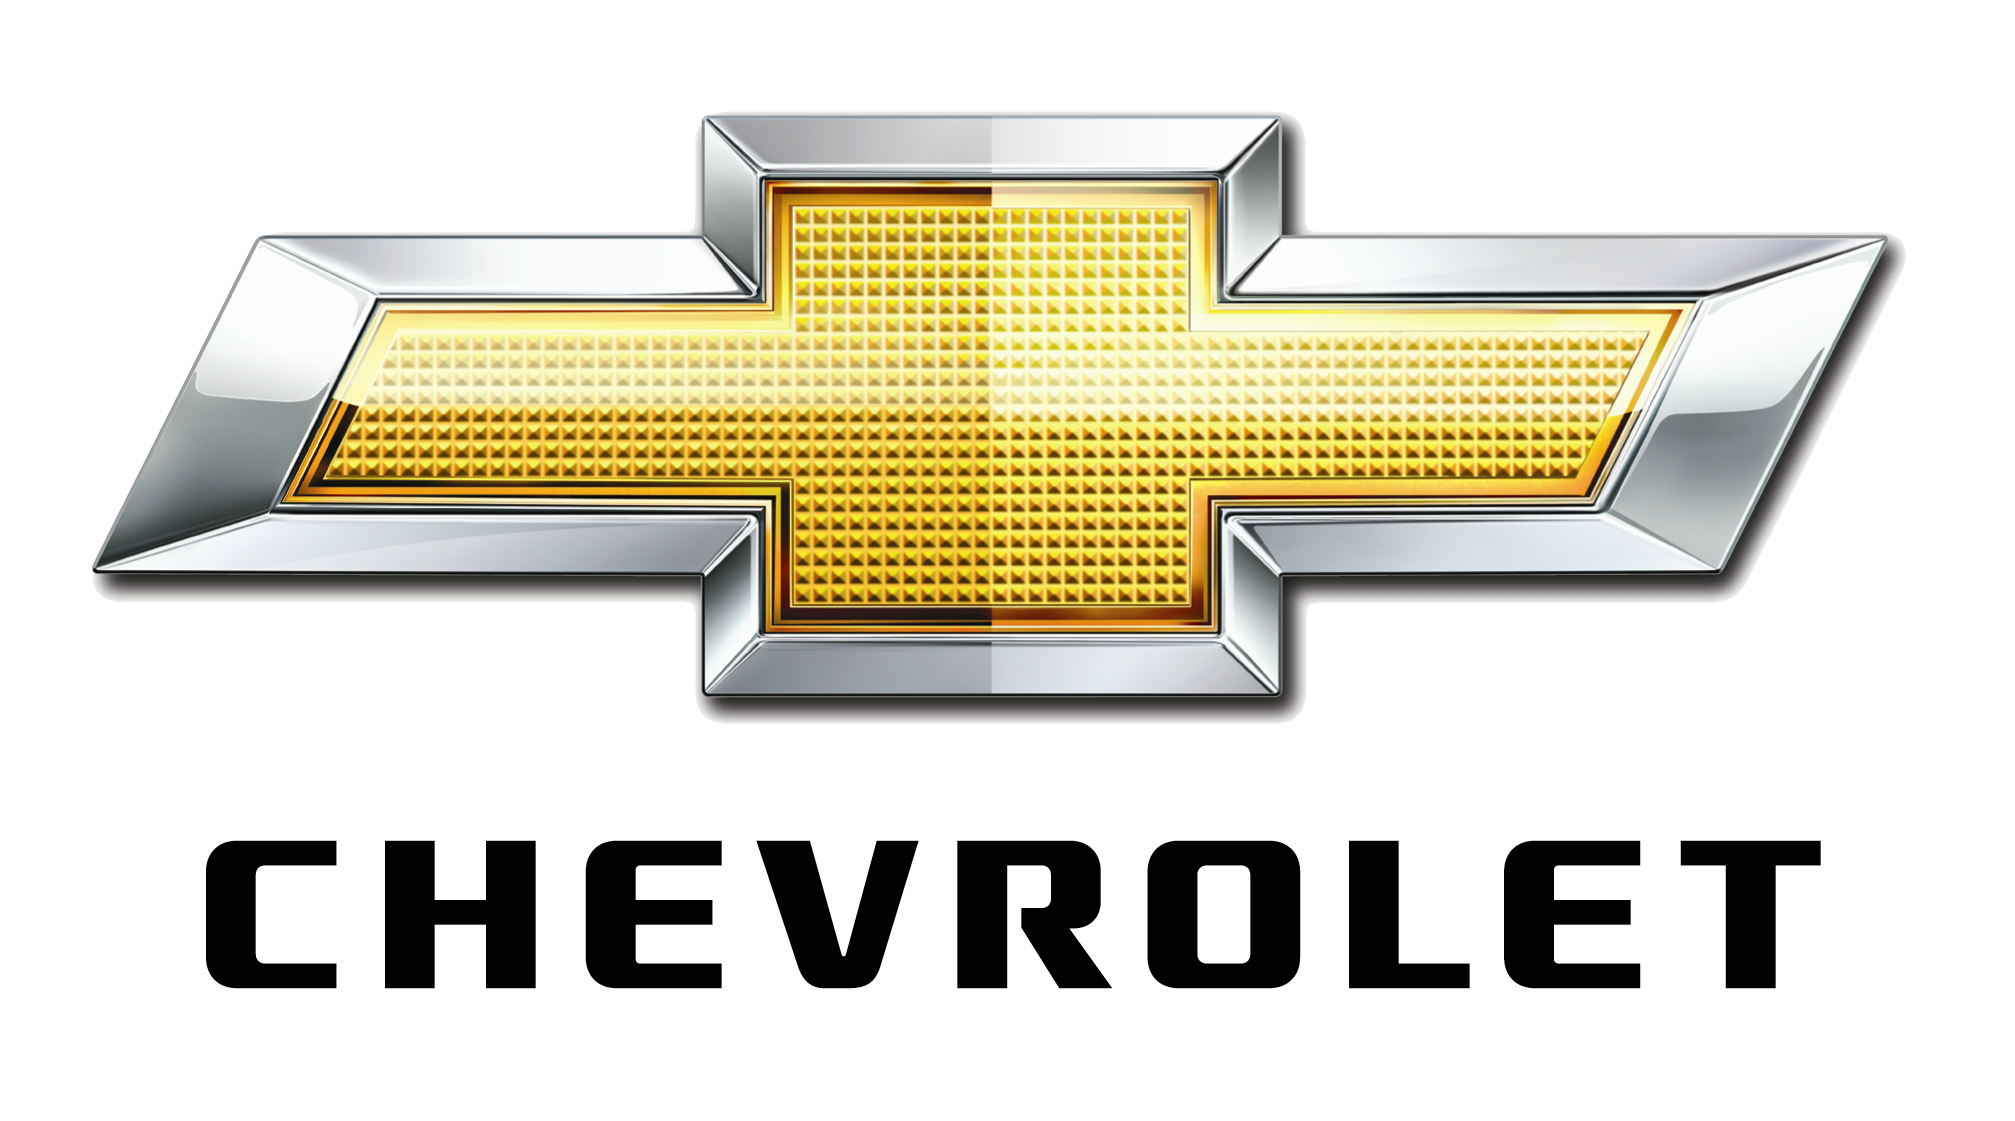 Sweepstakes And Instant Win Games Logotipos De Marcas De Coches Logotipos De Carros Logo De Chevrolet